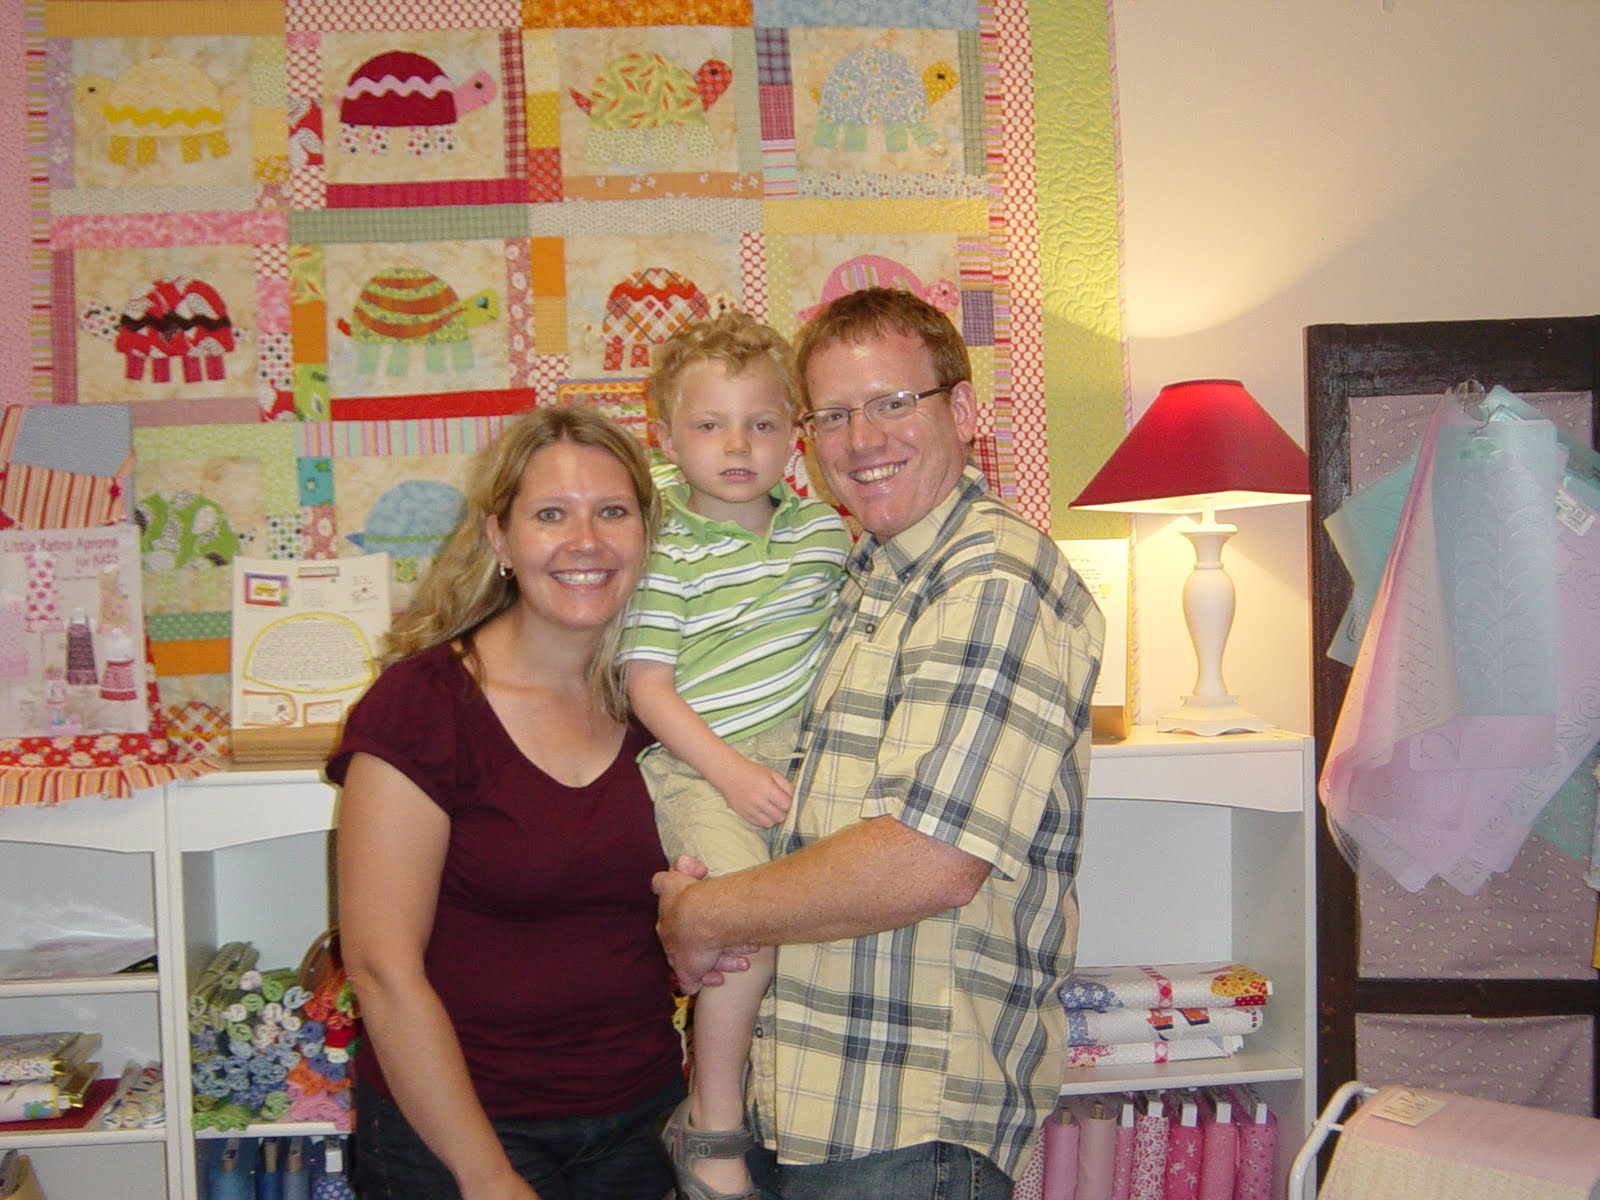 Rose Room Quilts: Myrtle Beach area Quilt Shops - People, Places ... : people places and quilts - Adamdwight.com